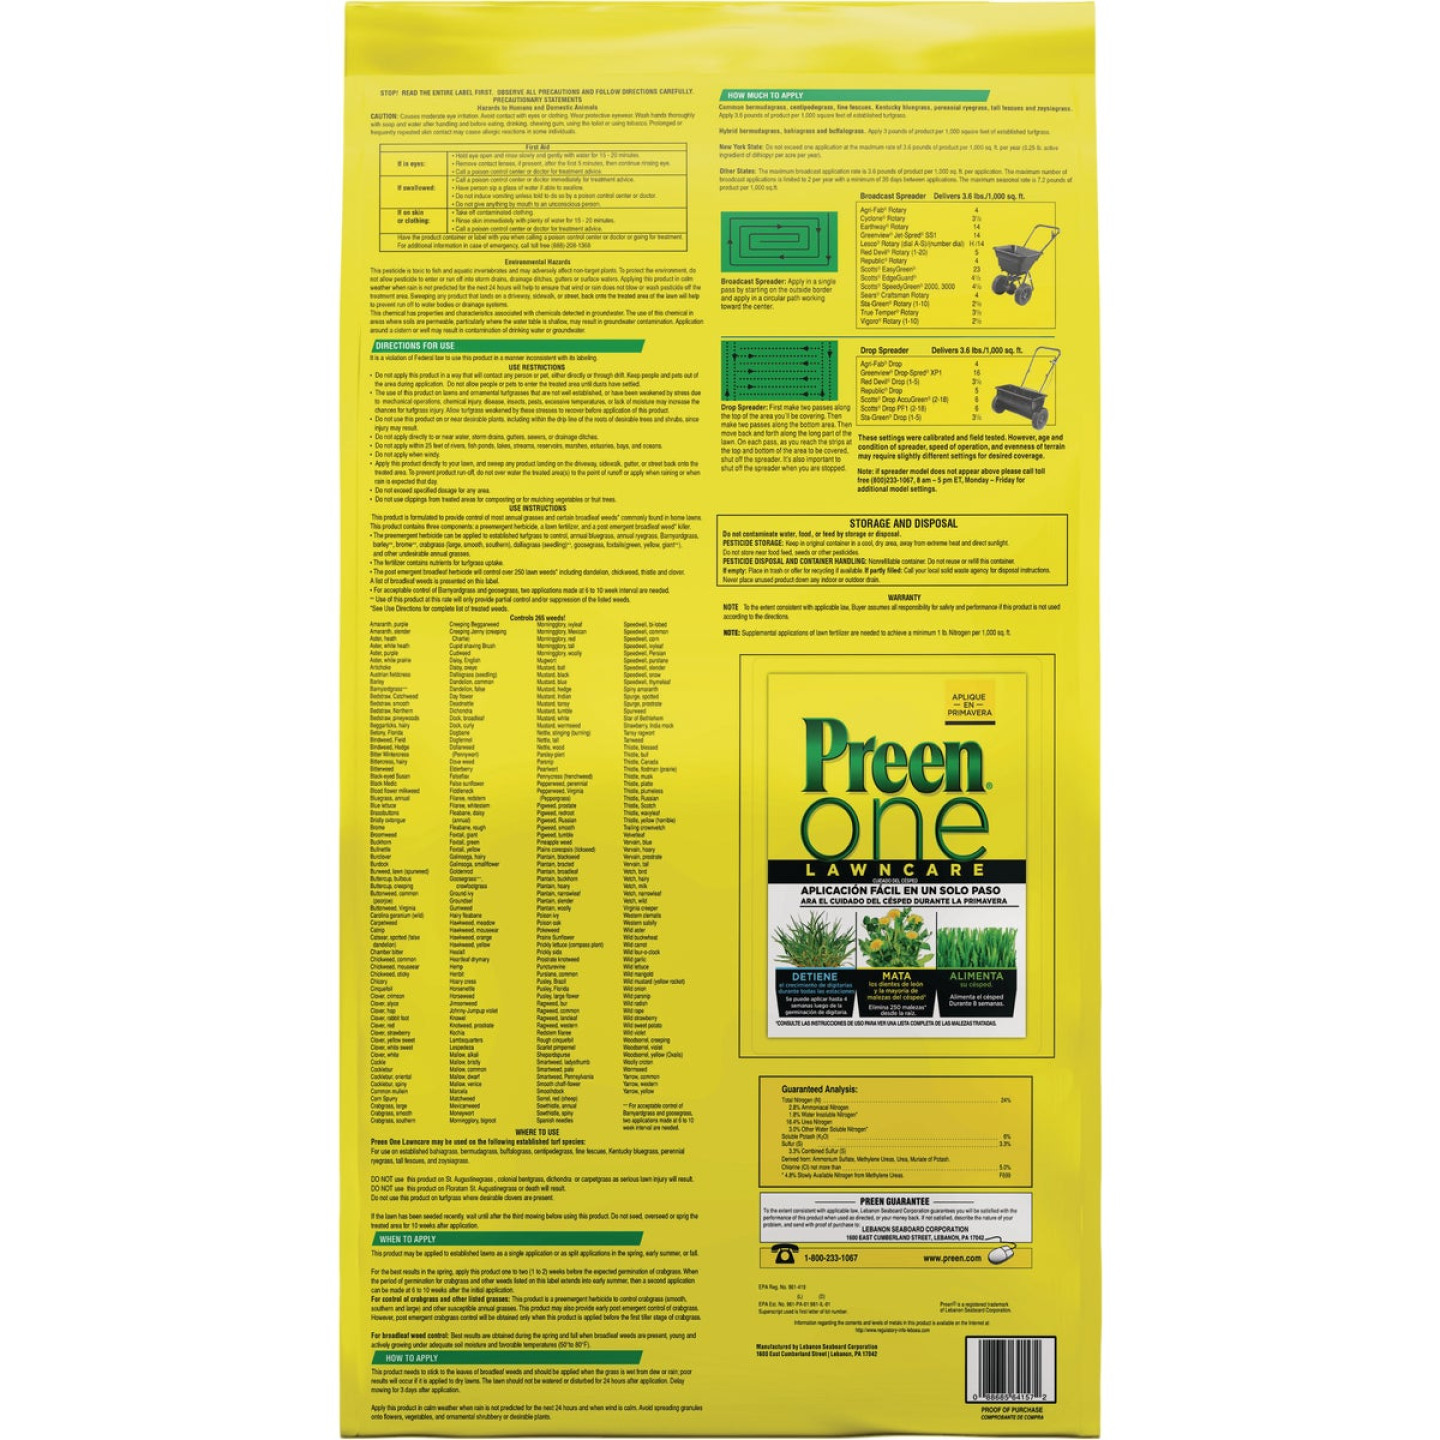 Preen One Lawn Care 18 Lb. Ready To Use Granules Weed Killer with Fertilizer Image 2